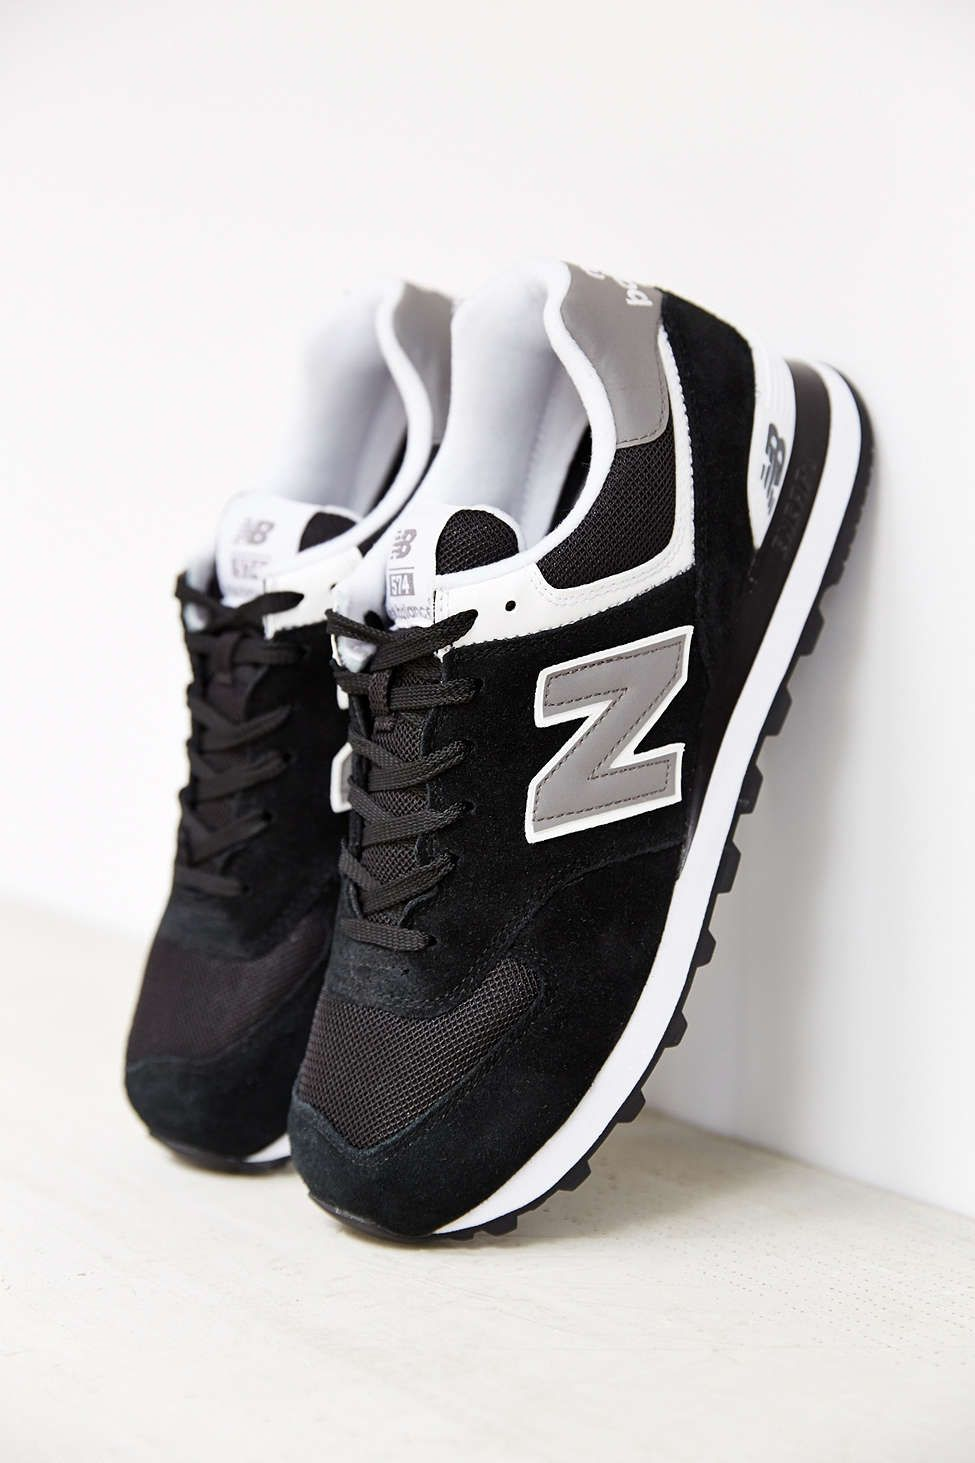 5c5588d5eef New Balance 574 Core Sneakers